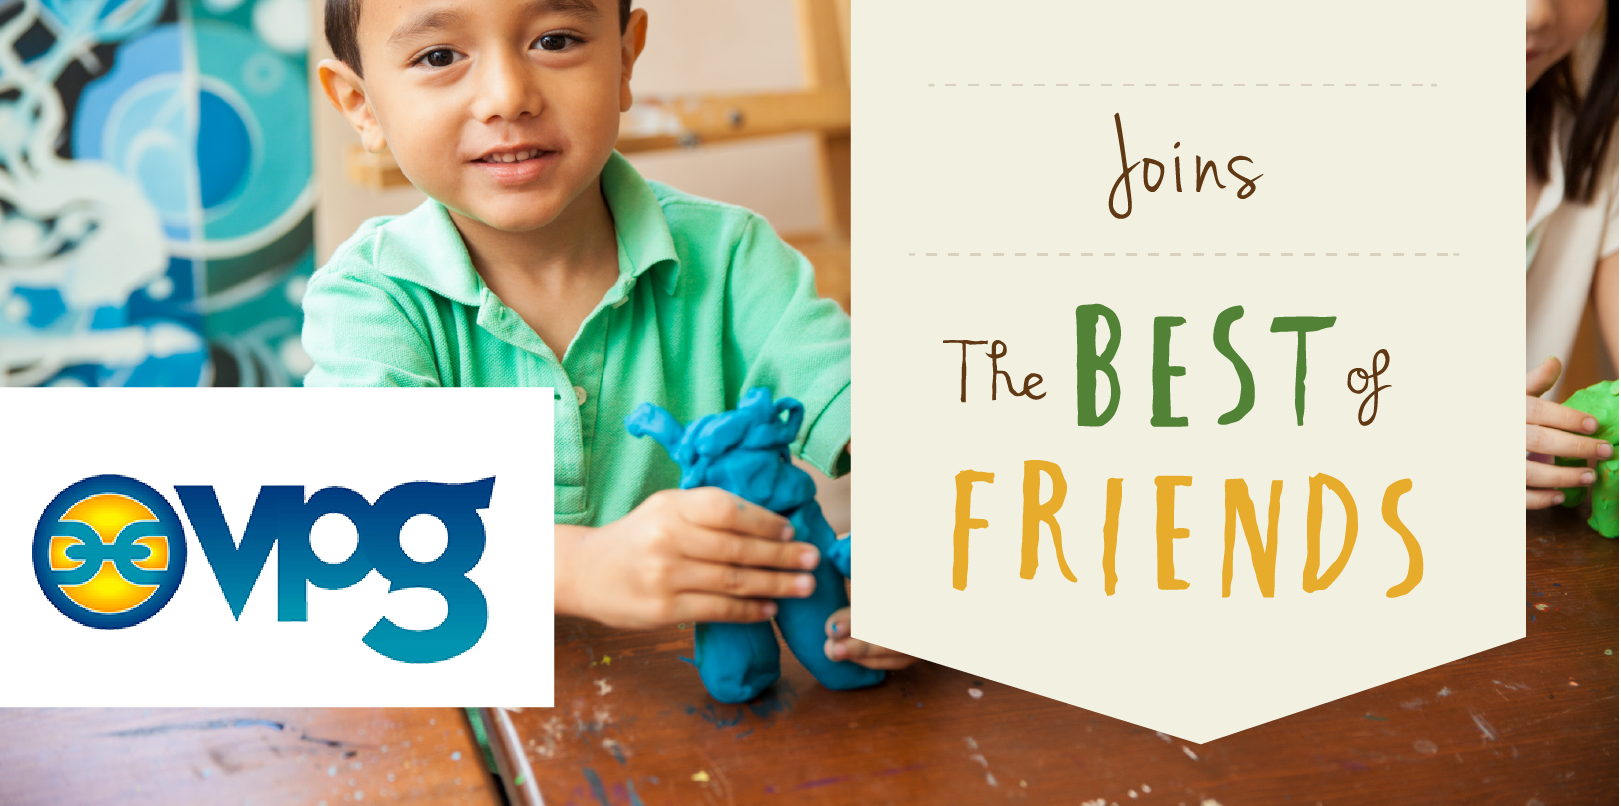 The Best of Friends is a SEL program by Quirky Kid.